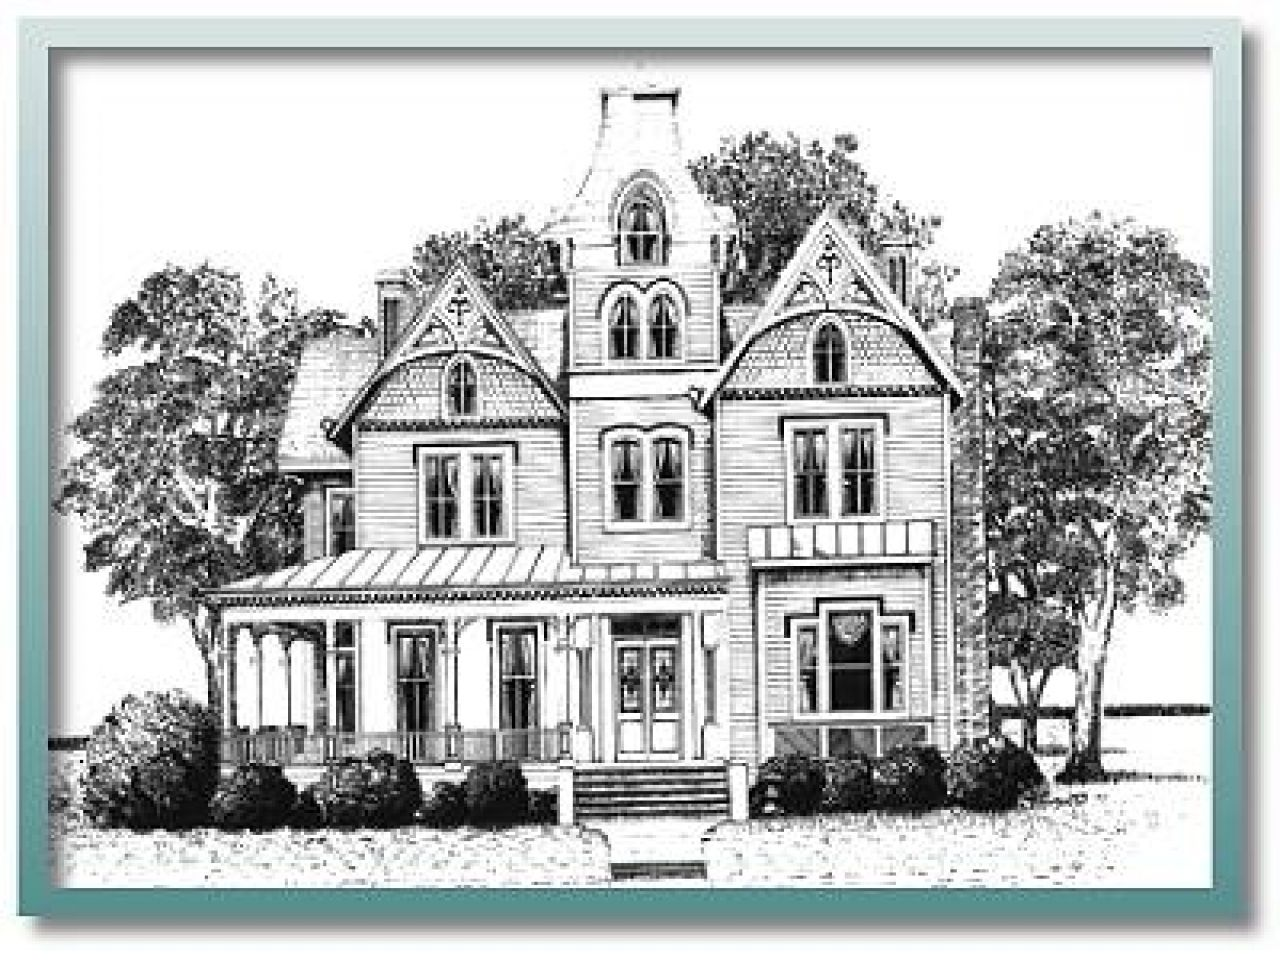 historic house plans victorian lrg colonial floor old | Home Design ...